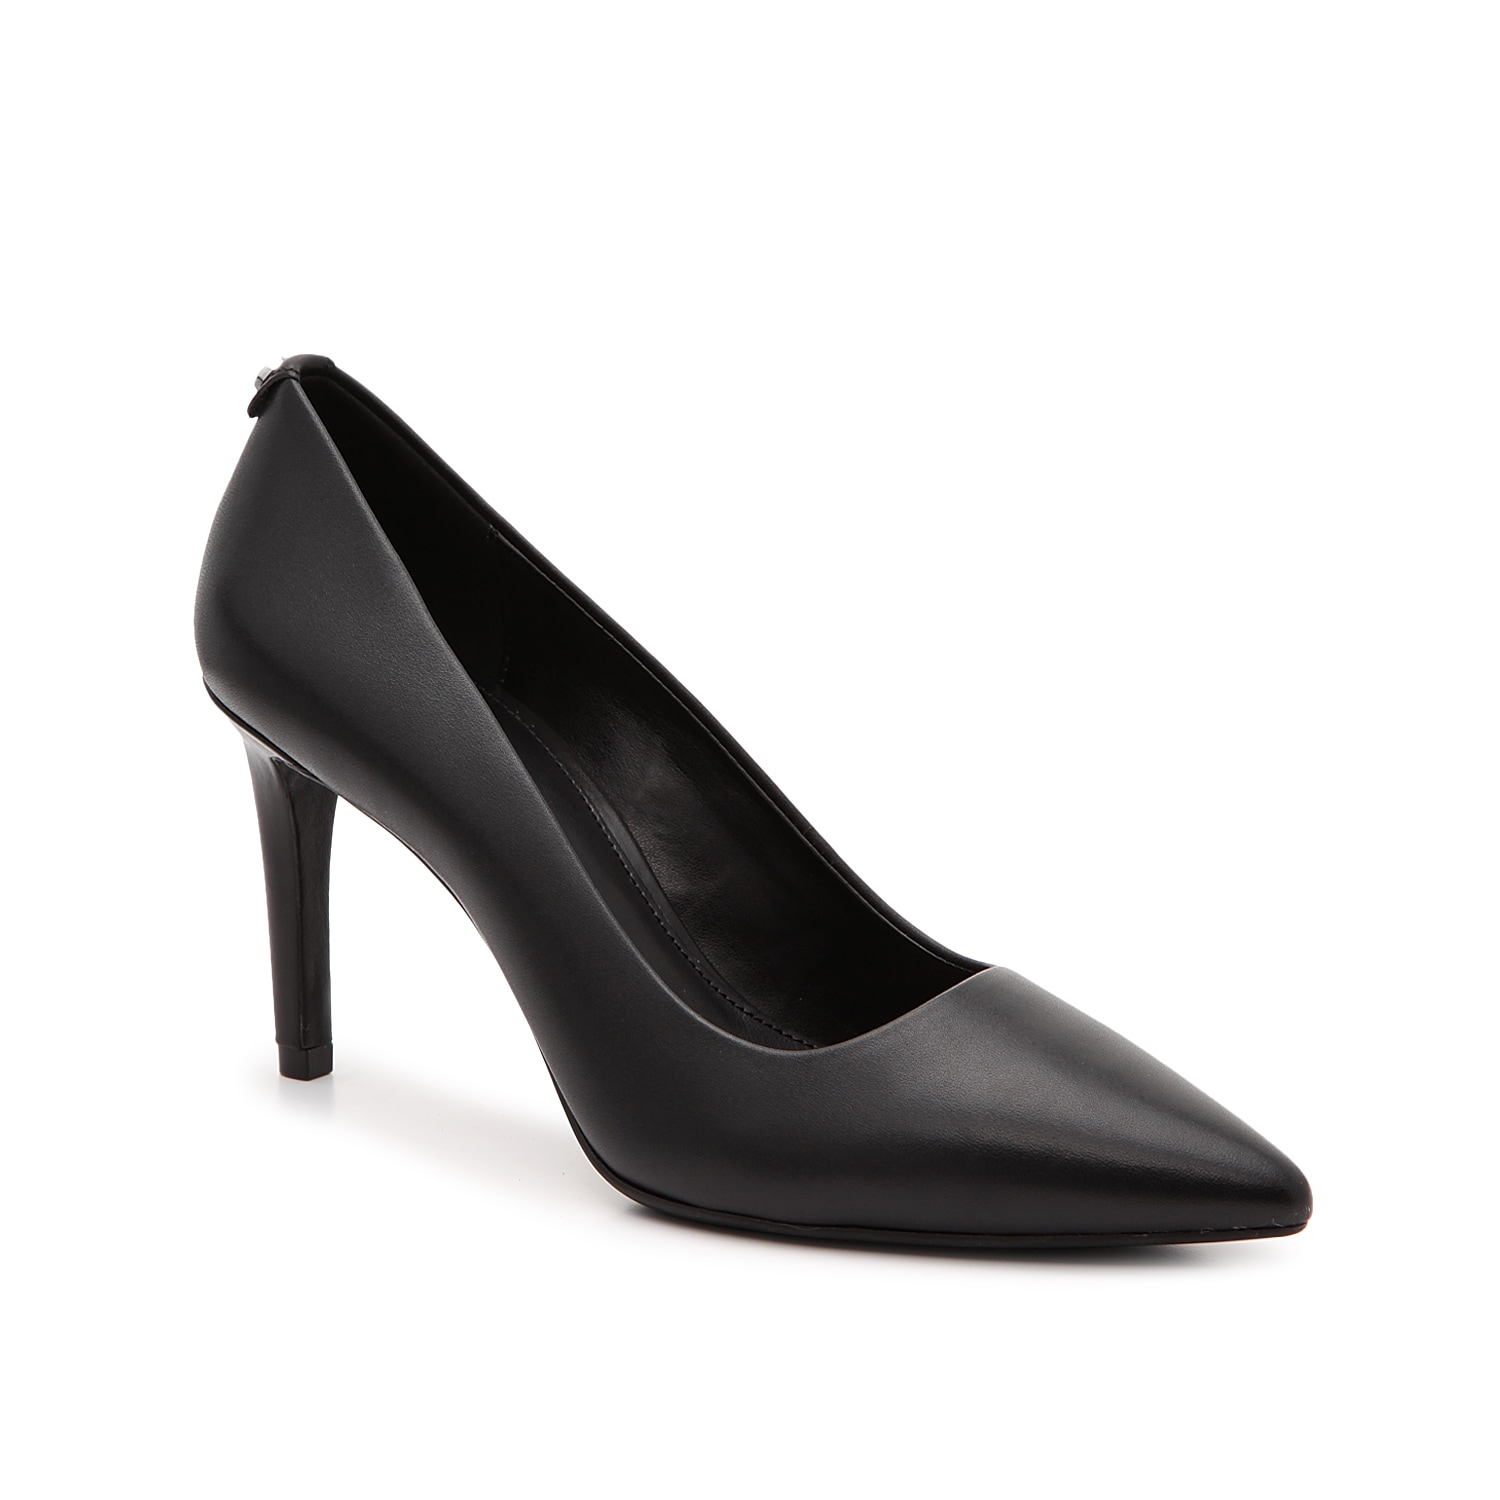 Keep in step with tradition when you wear these iconic pumps from Michael Michael Kors. The Dorothy stays true to sweet-and-simple style with a basic silhouette and just-right heel.